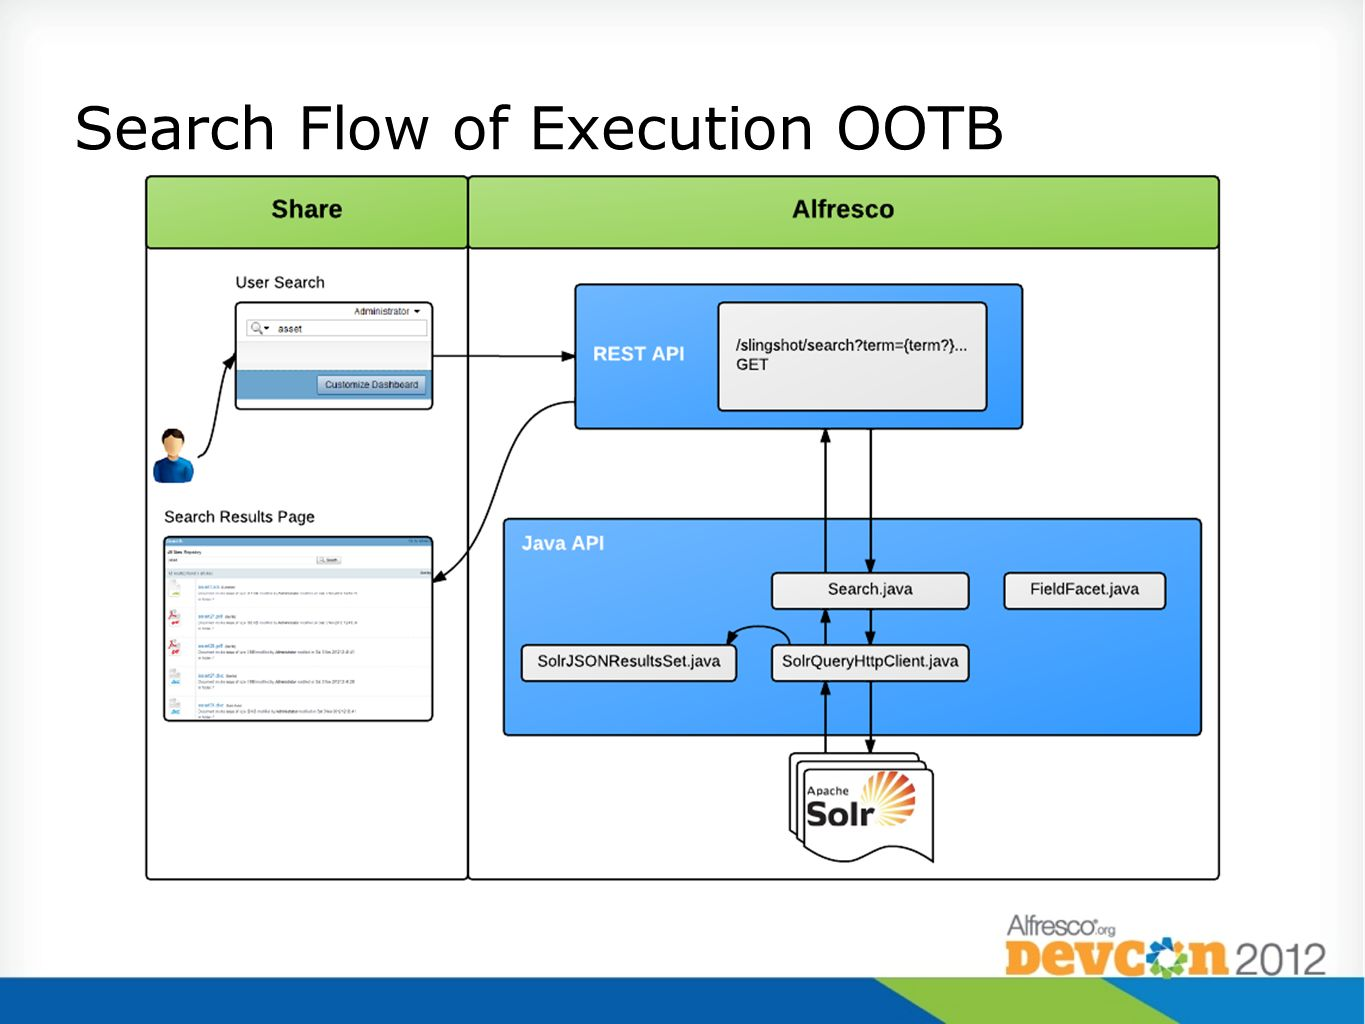 Search Flow of Execution OOTB